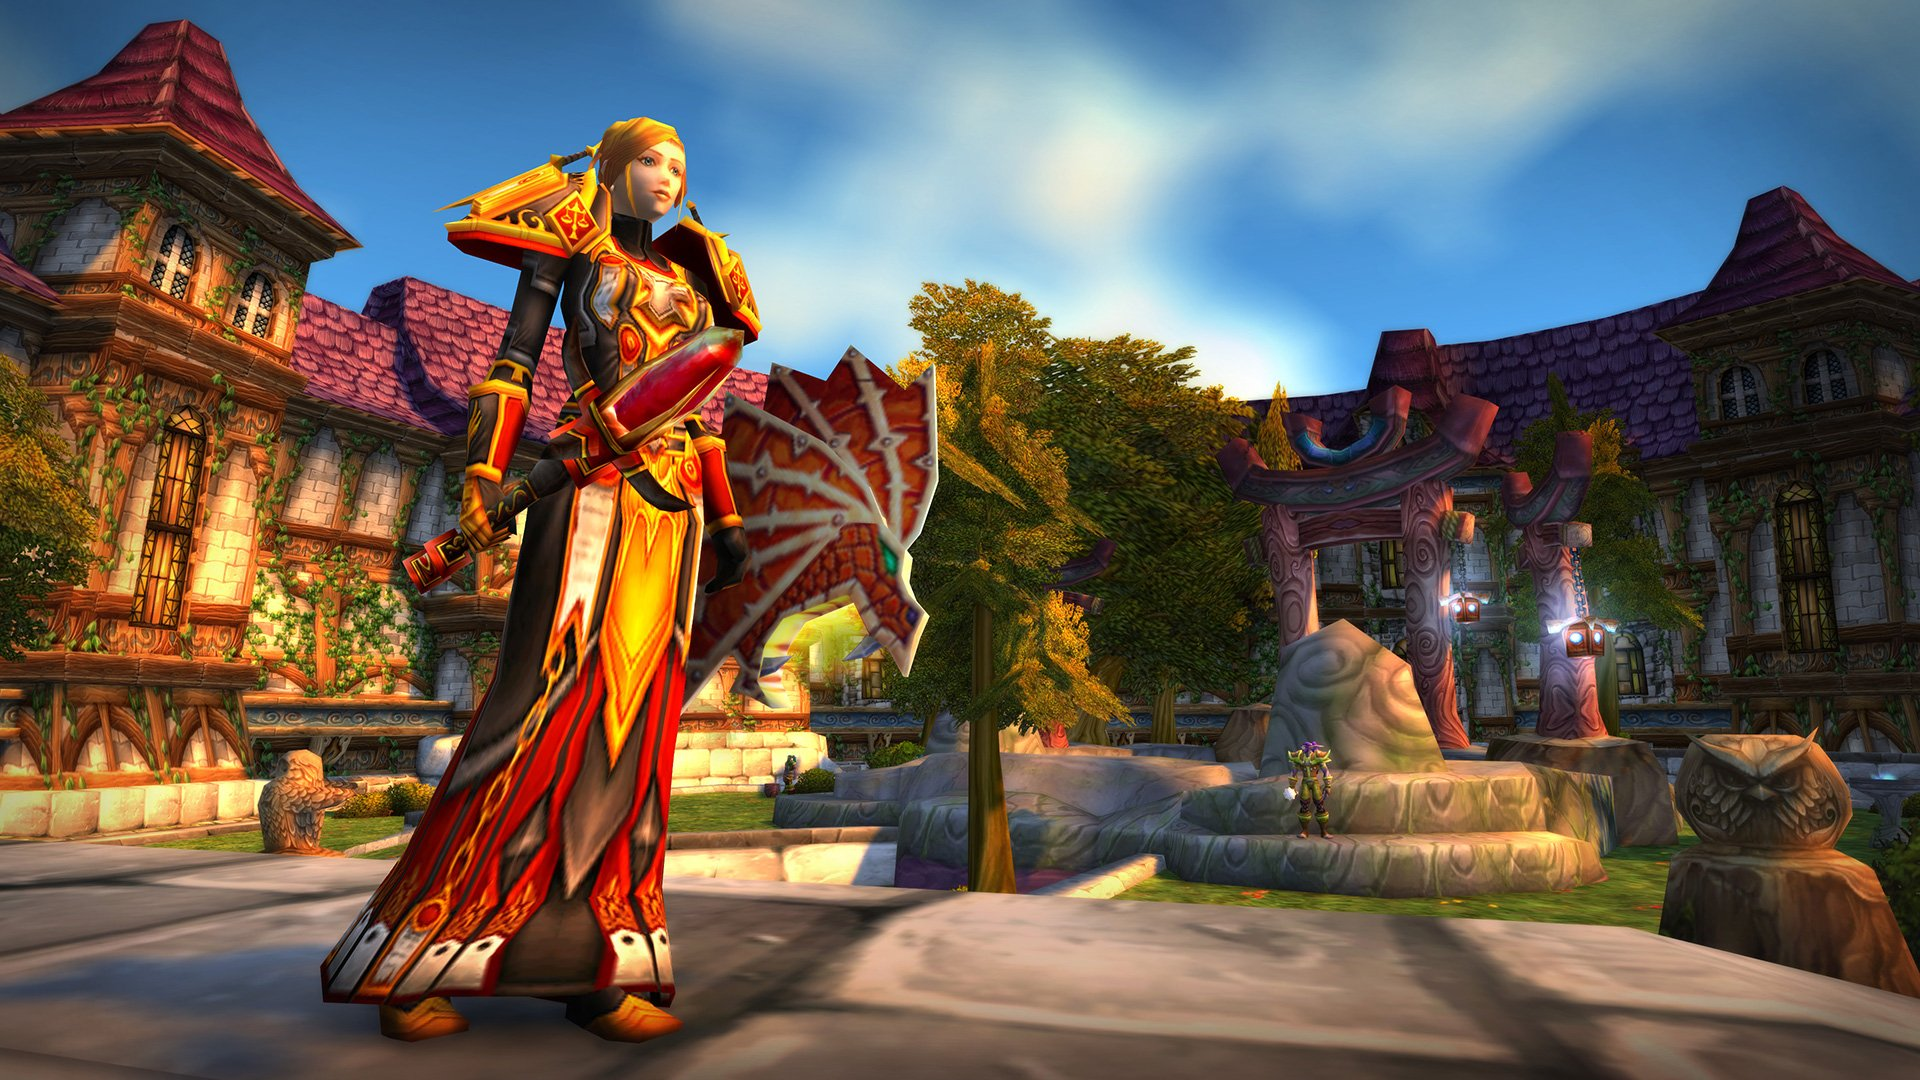 Blizzard warns that if you play on the World of Warcraft Classic Herod realm, you may have an absurd waiting/queue time